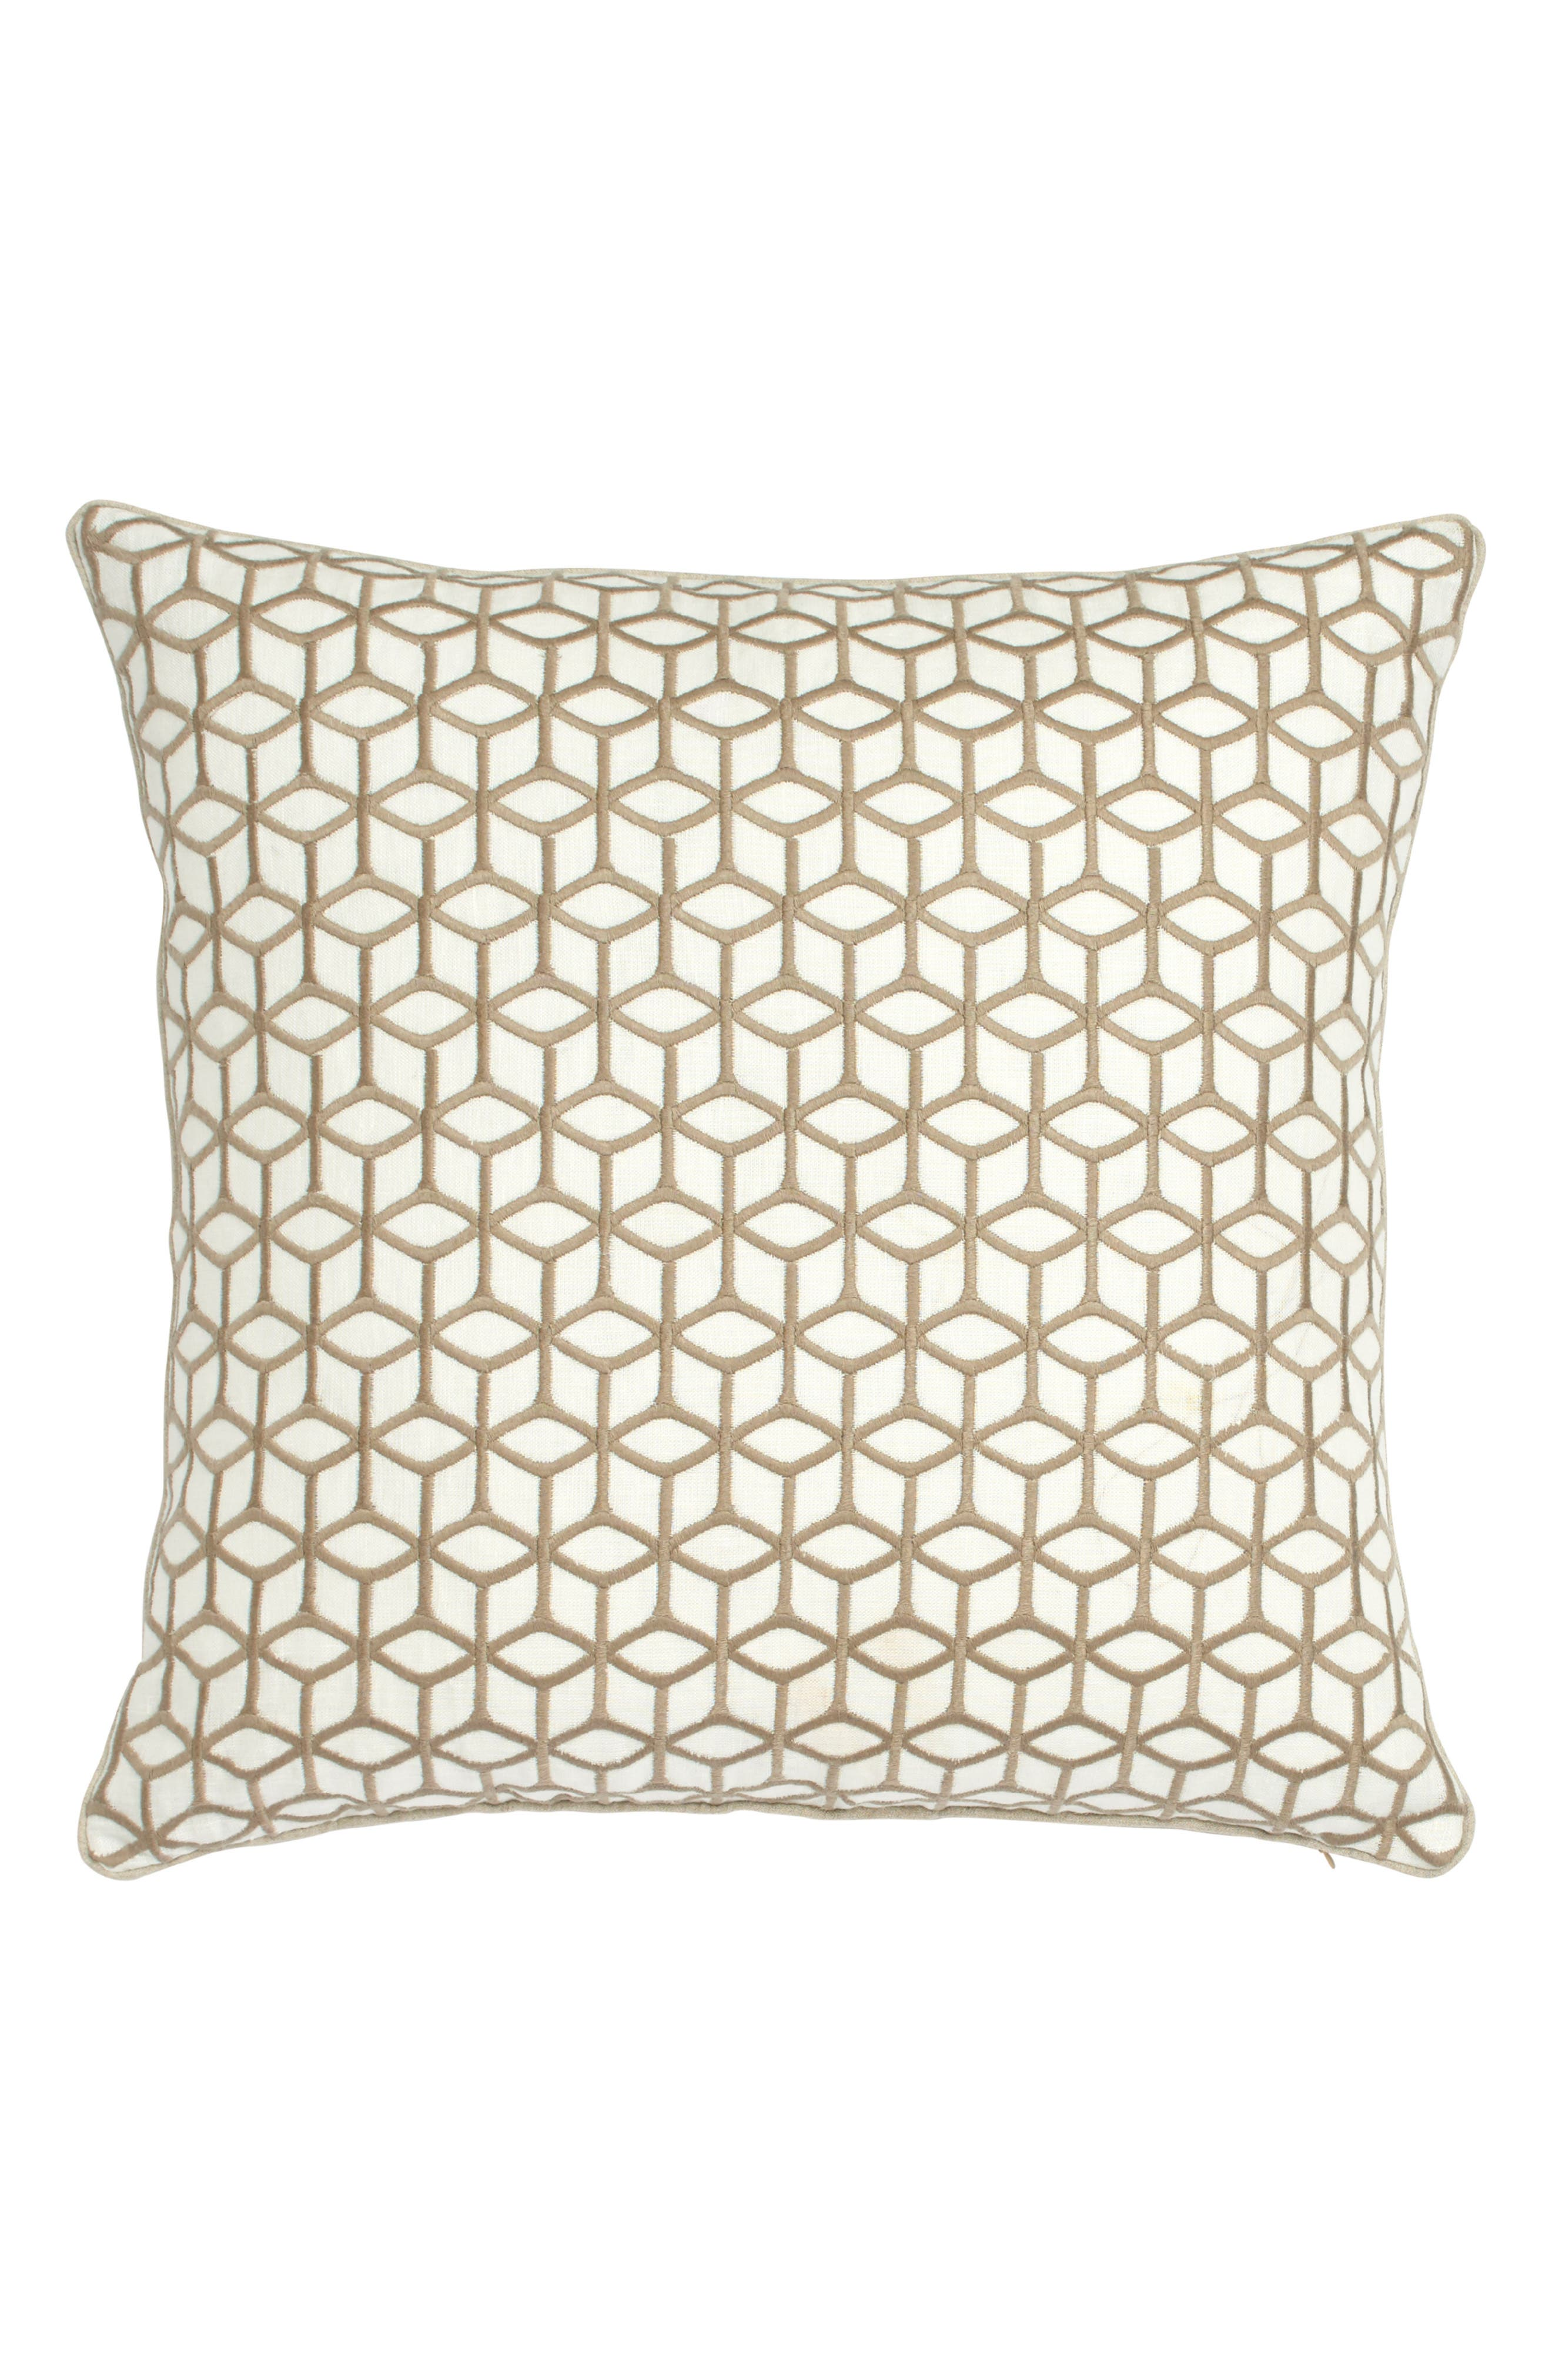 Lotus Accent Pillow,                         Main,                         color, 250